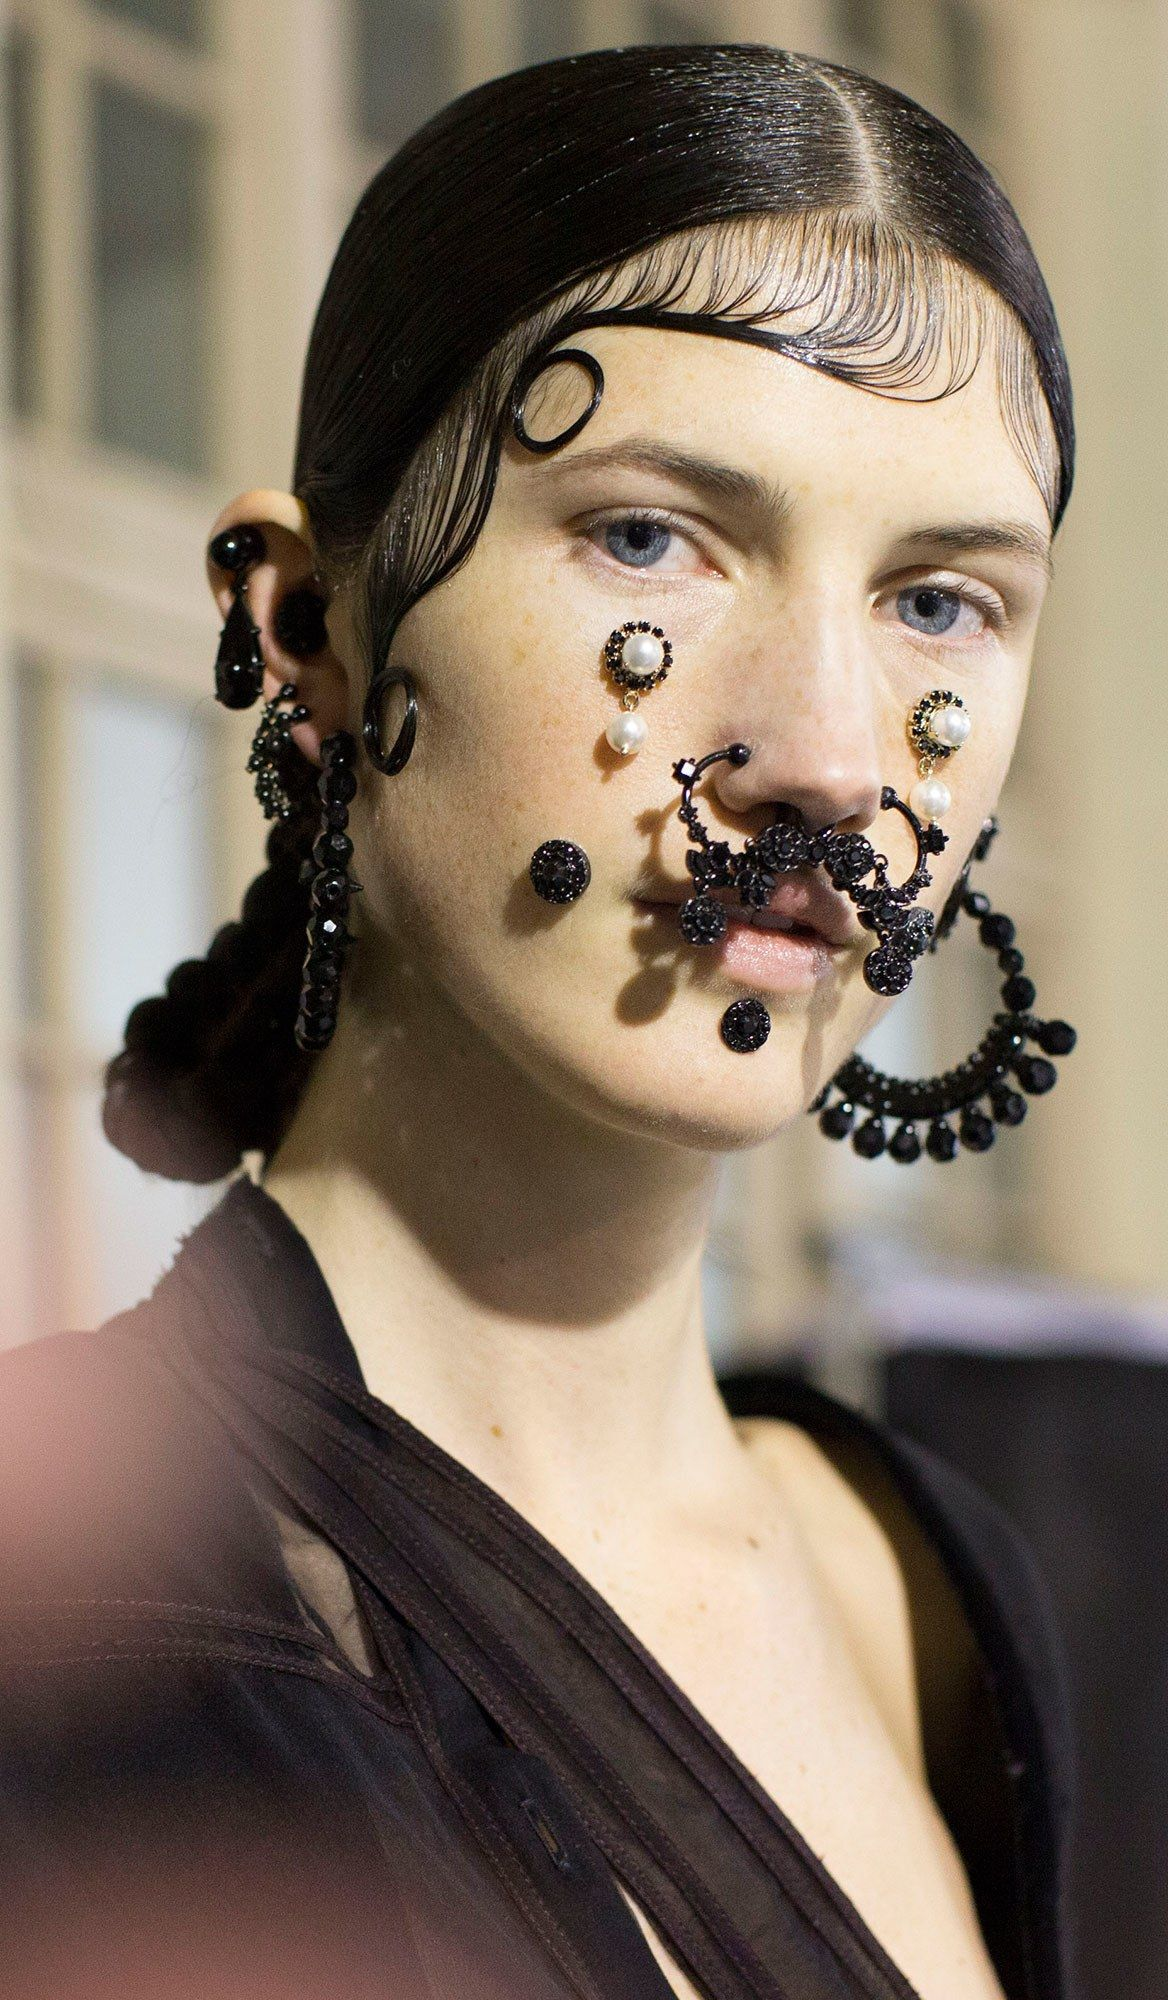 Girl nose piercing  Givenchyus Victorian Chola Girl Ganguand the FKA twigs Connection